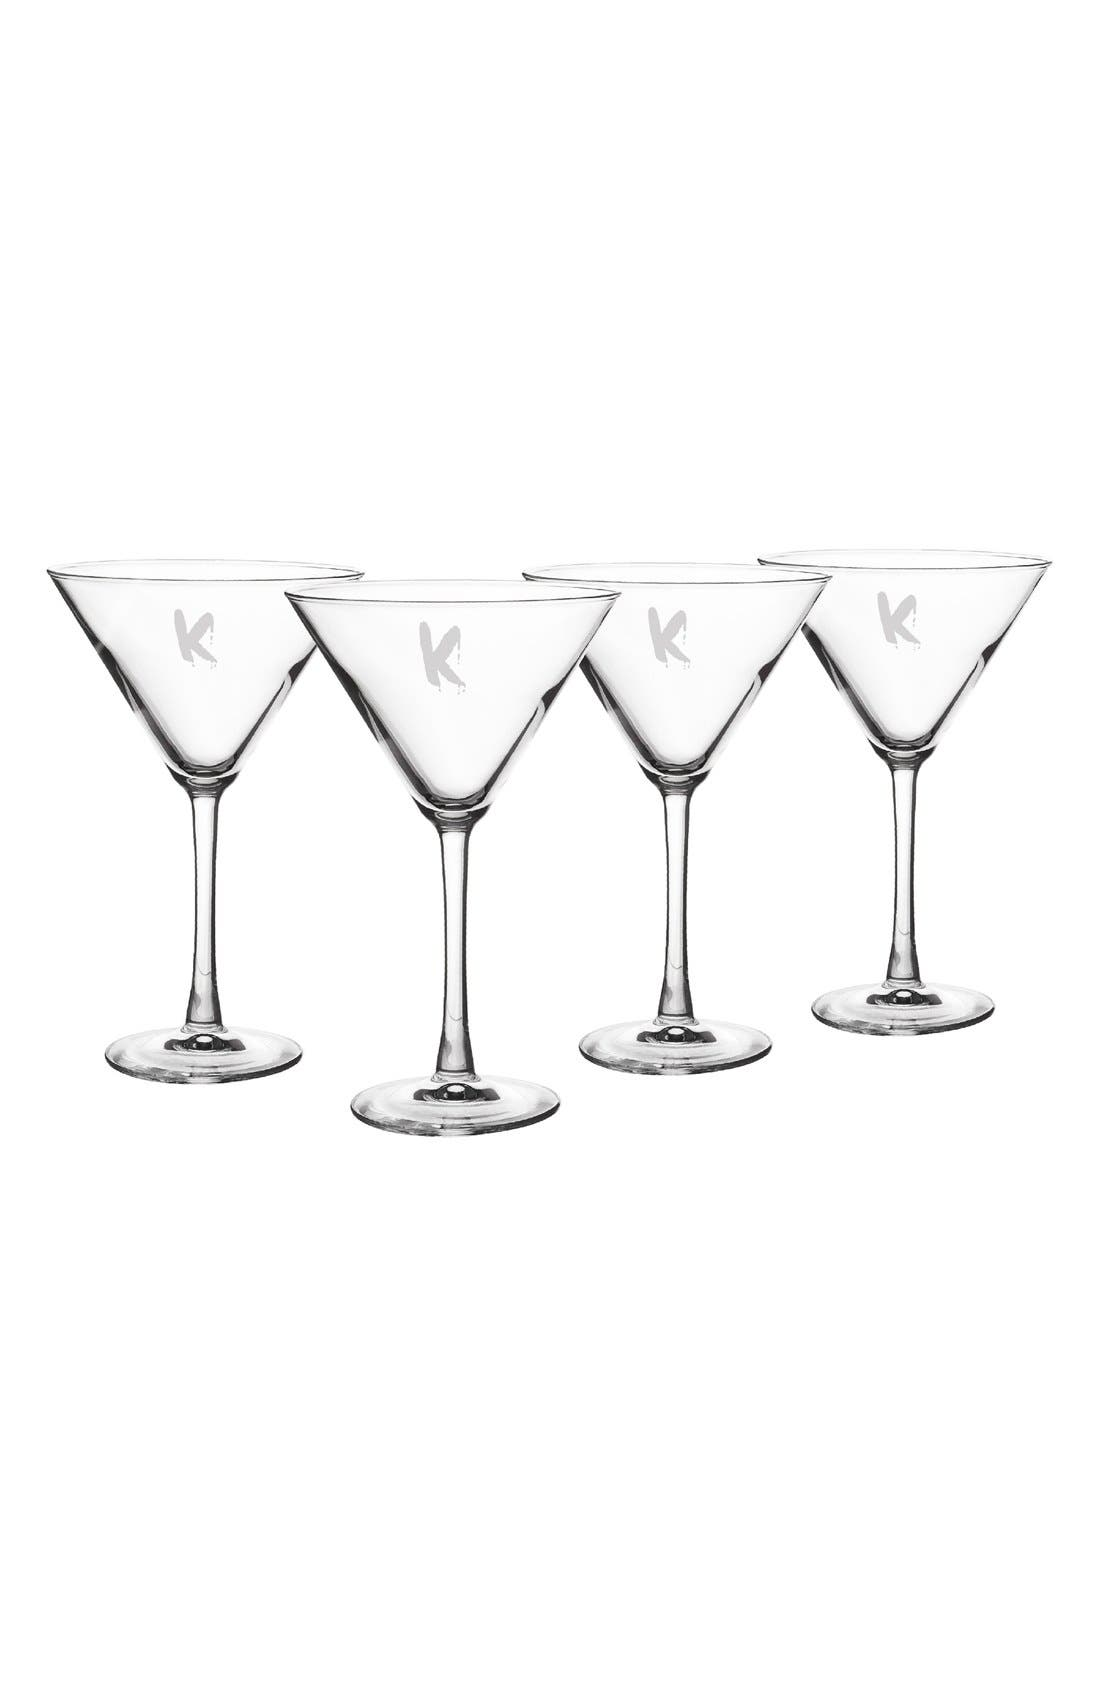 Cathy's Concepts 'Spooky' Monogram Martini Glasses (Set of 4)